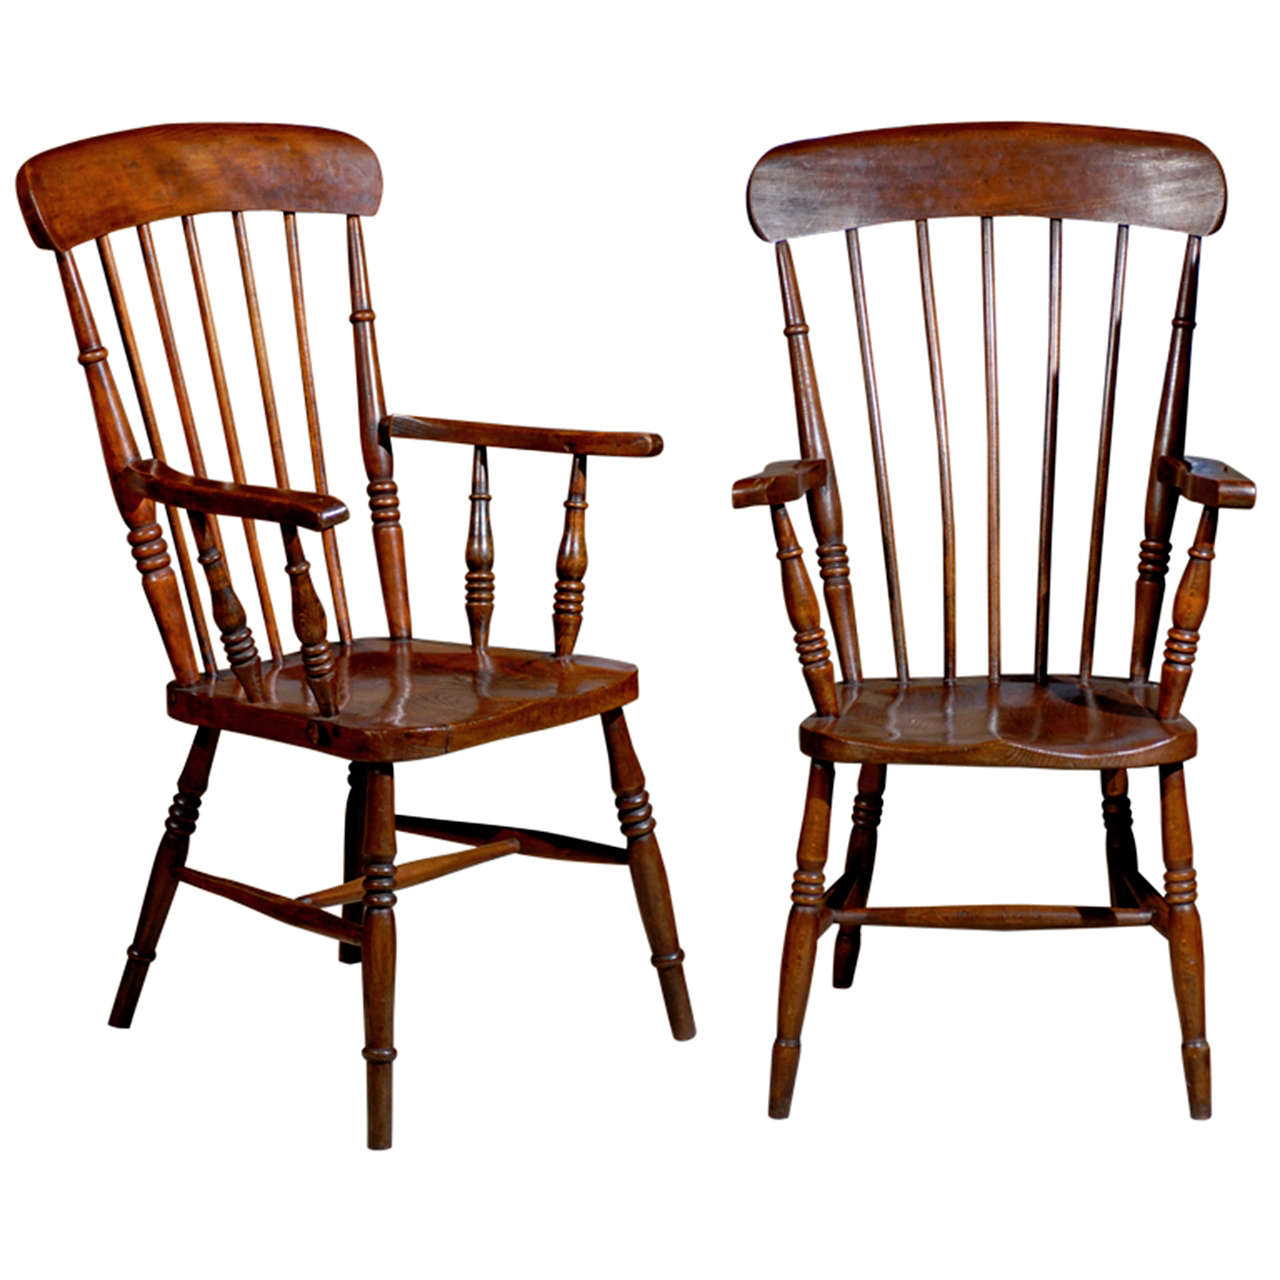 comb back windsor chair swivel chairs under $200 at 1stdibs